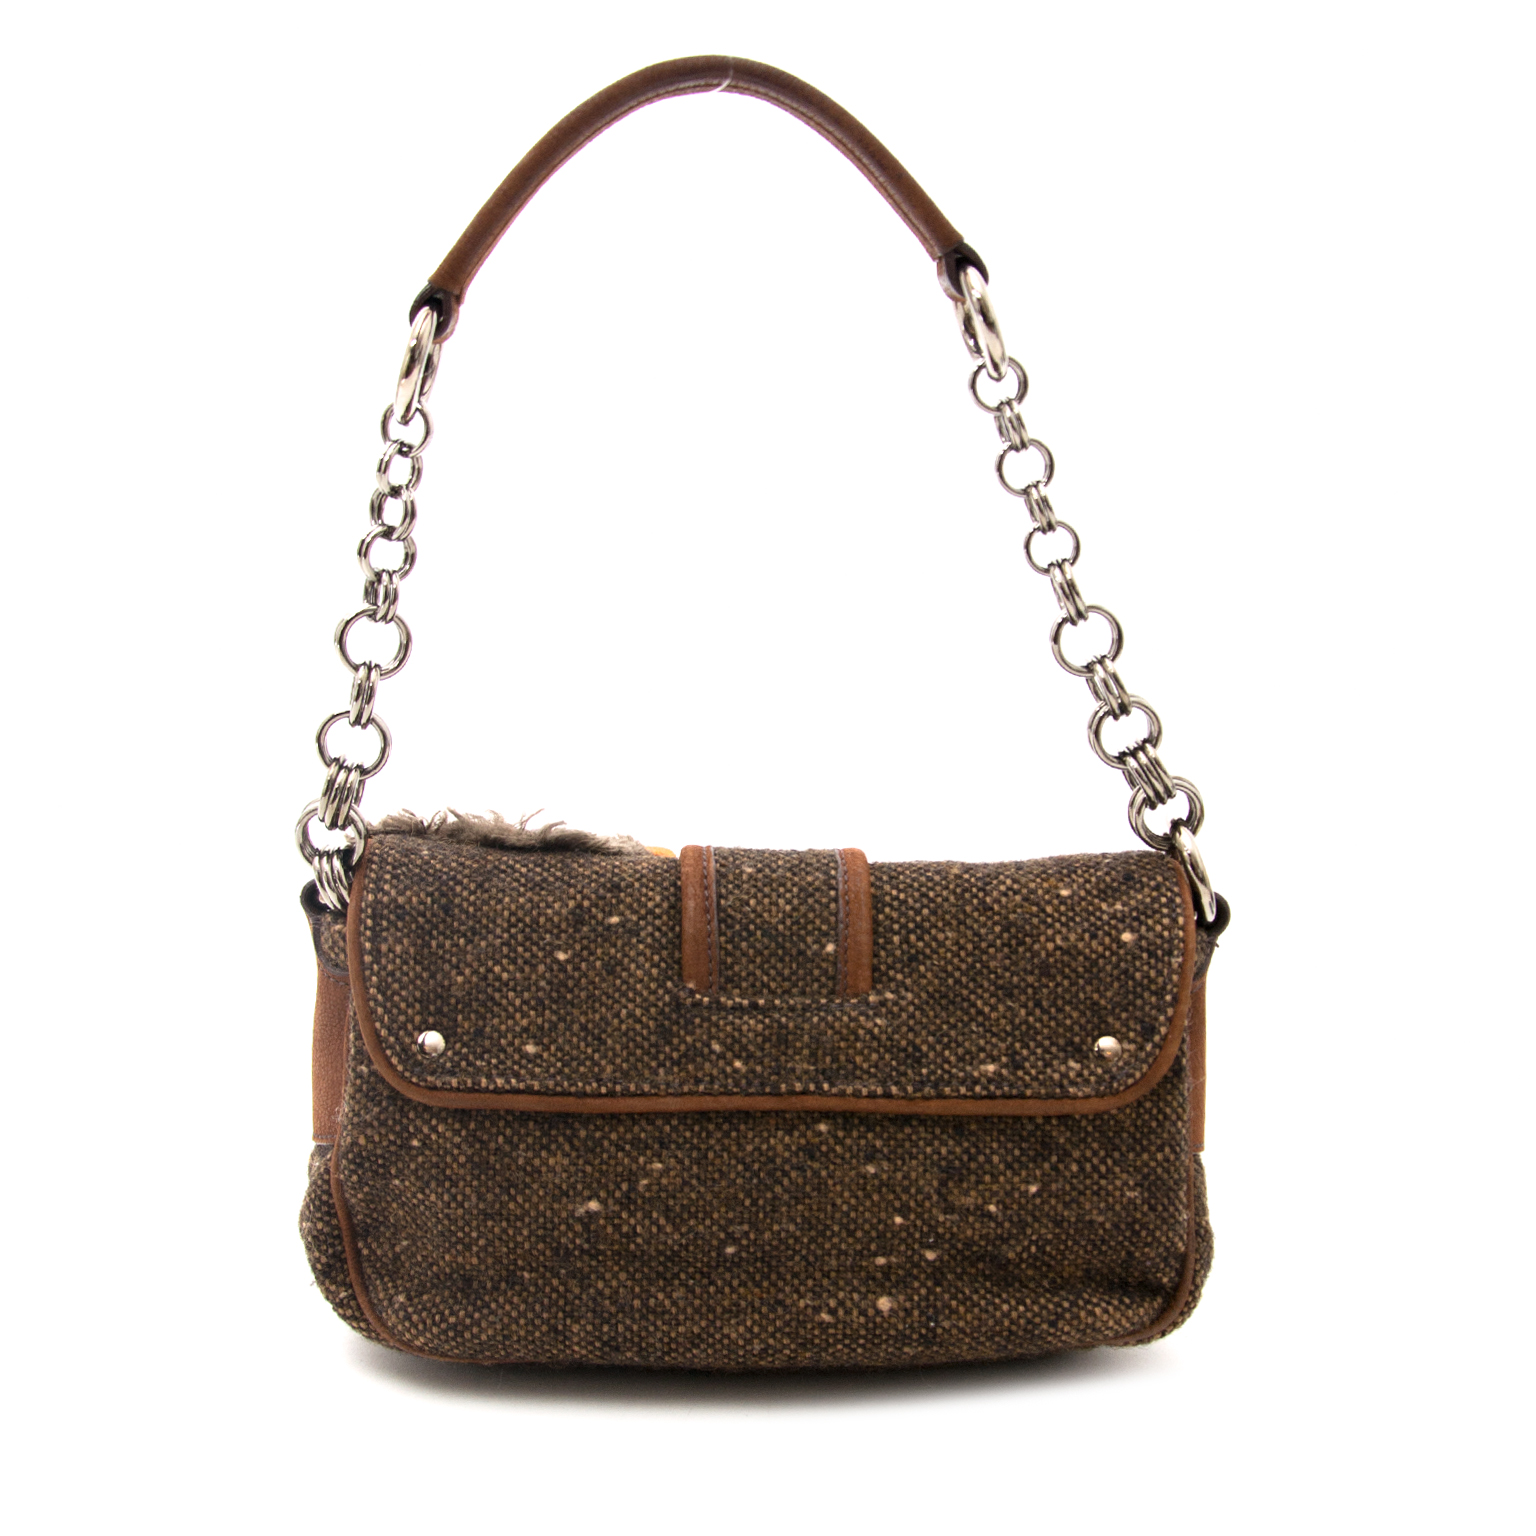 2211d9a0d4333 Labellov Shoulder - Bags ○ Buy and Sell Authentic Luxury